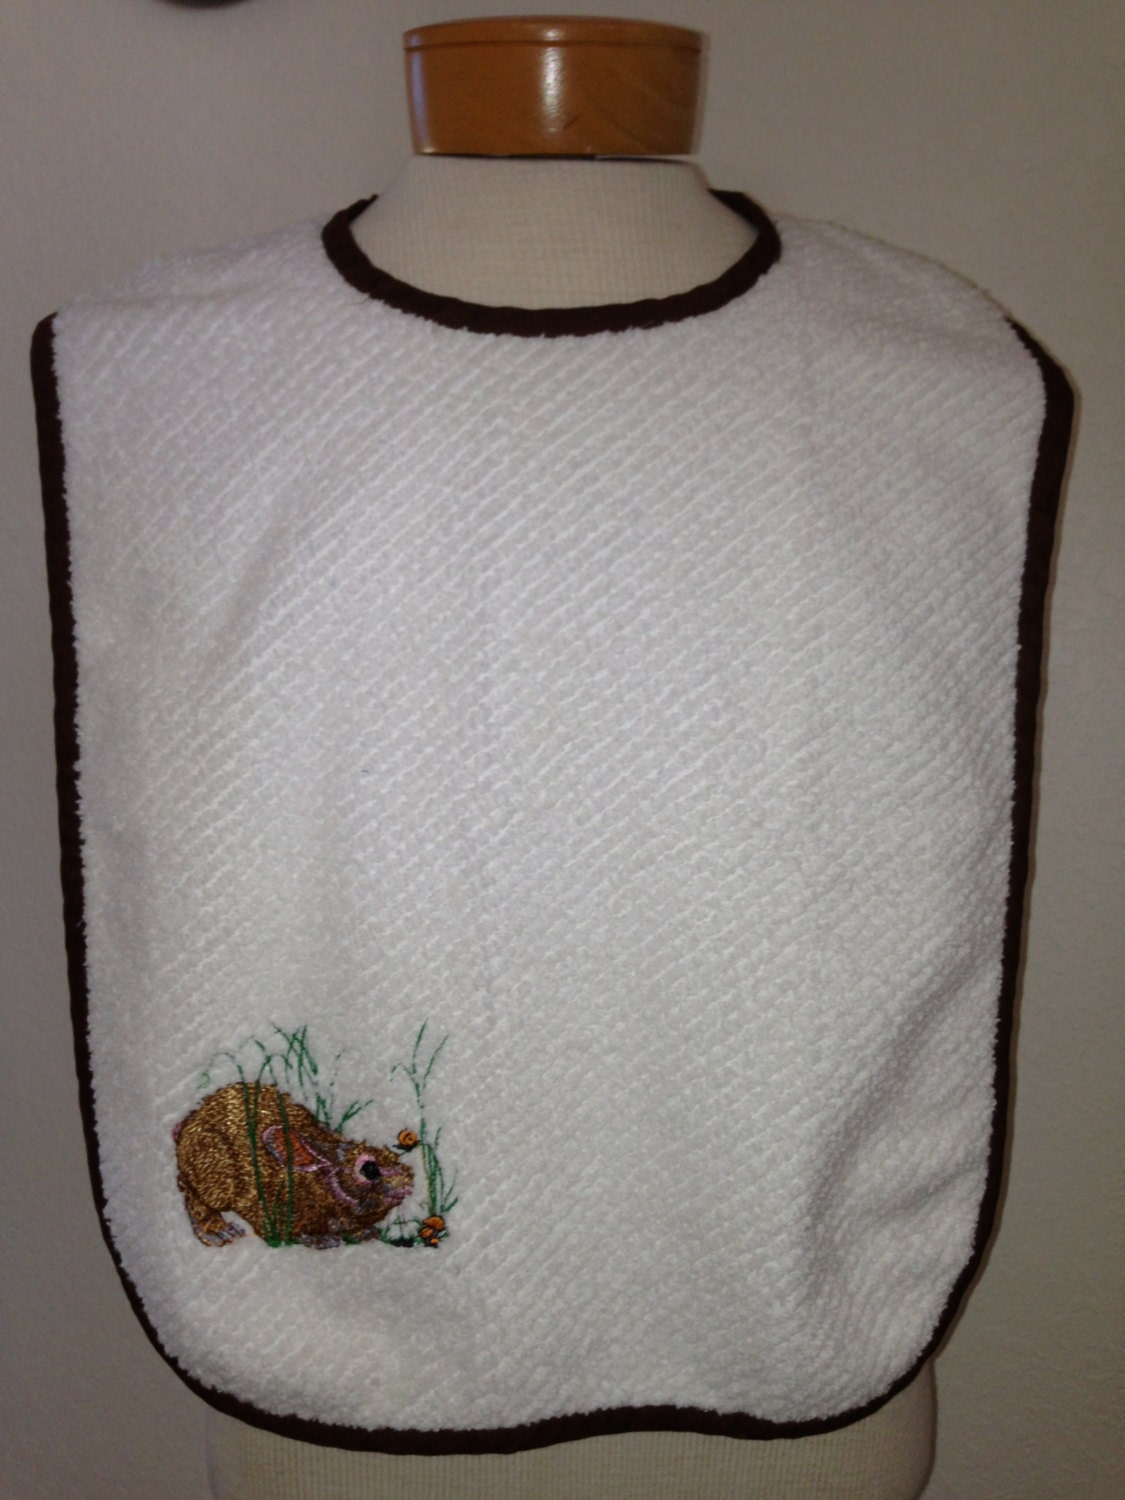 Large Adult Embroidered Terry Cloth Bibs For The Elderly